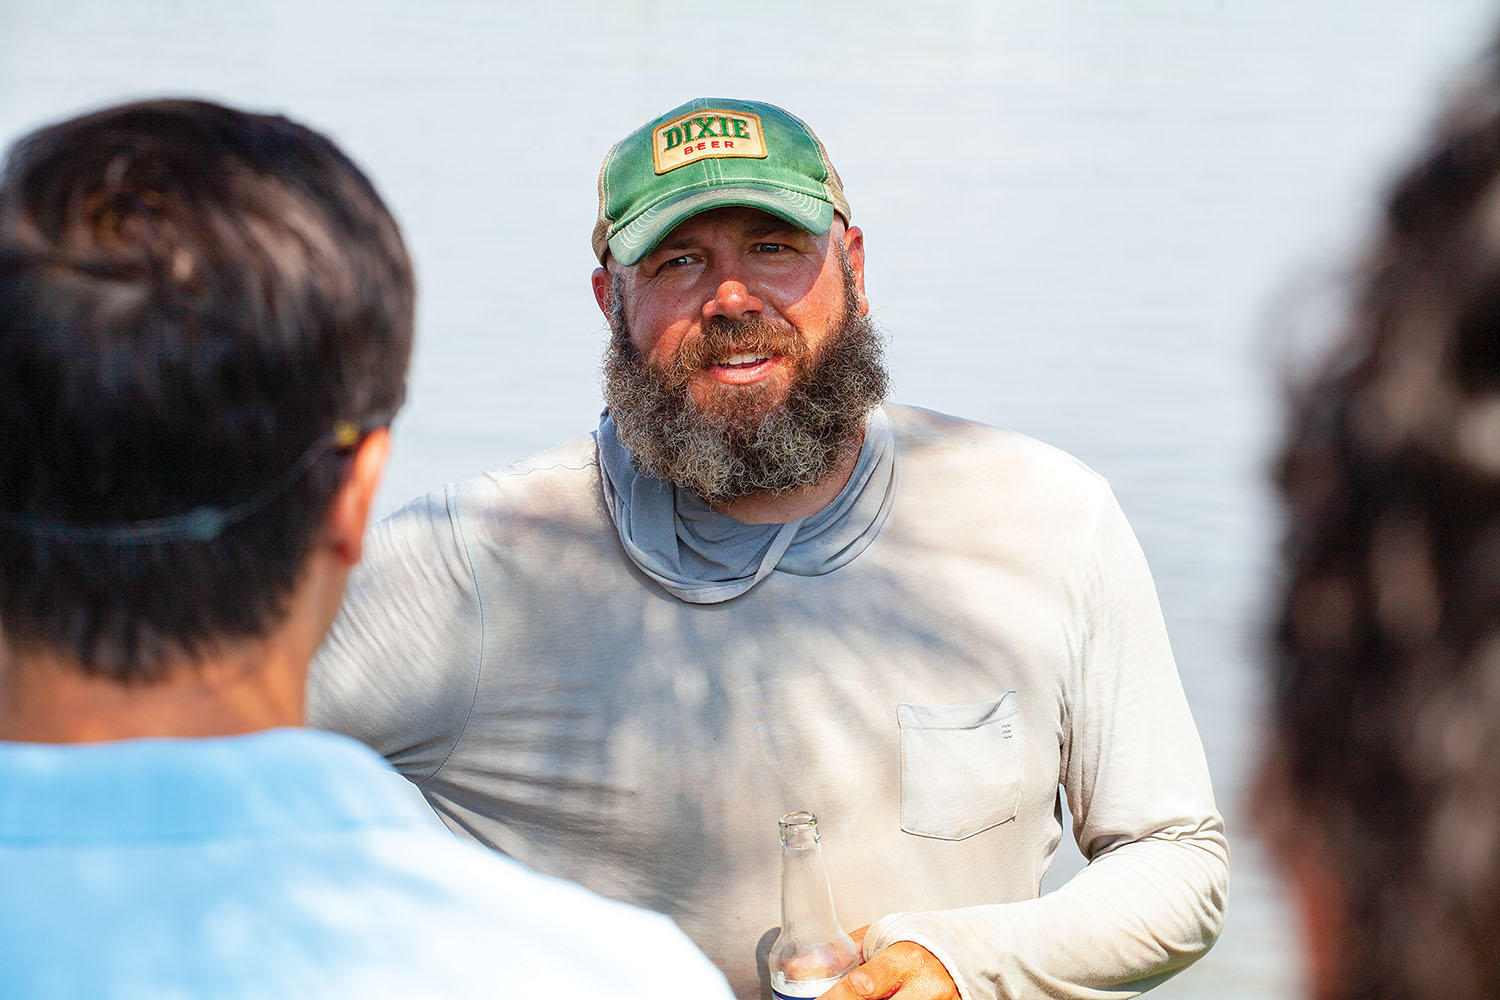 Joey Cargol recounts some of his canoeing adventures to friends and family at The Fly, a riverside park in New Orleans, August 4 on his way down the river. (Photo by Frank McCormack)